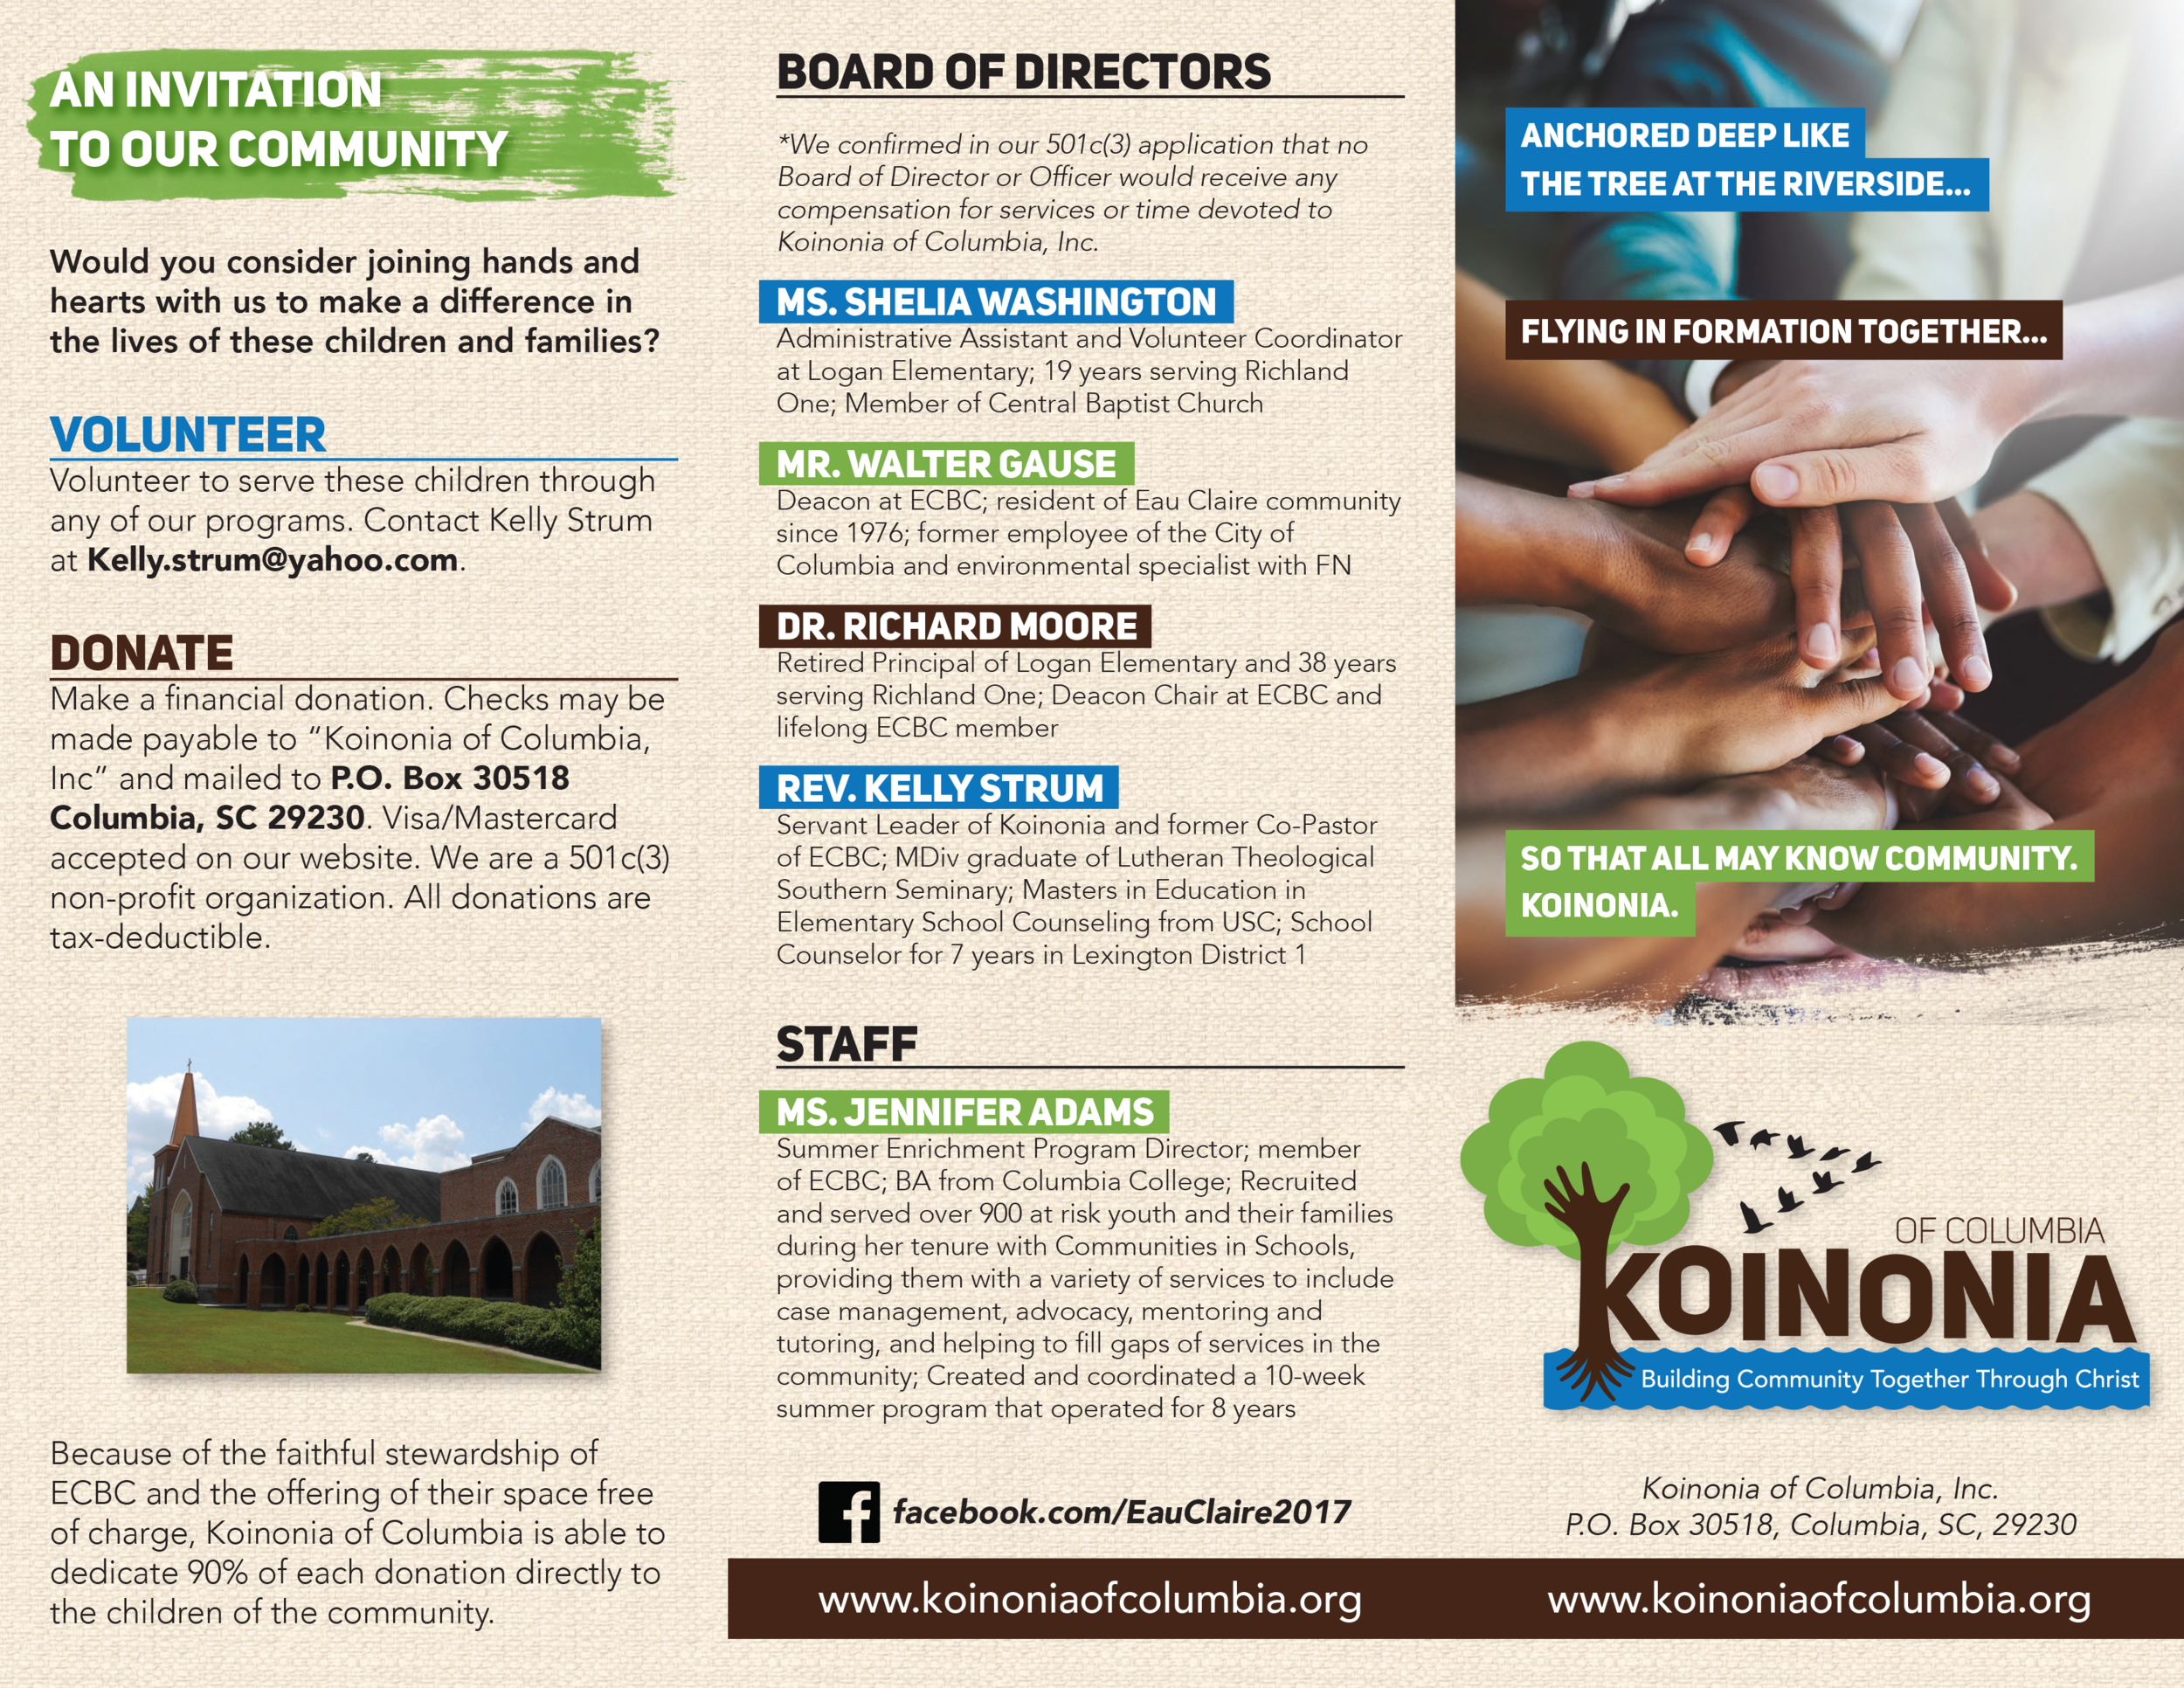 Download our brochure - Our informational brochure in PDF format is available for you to download and print to share the mission of Koinonia of Columbia.